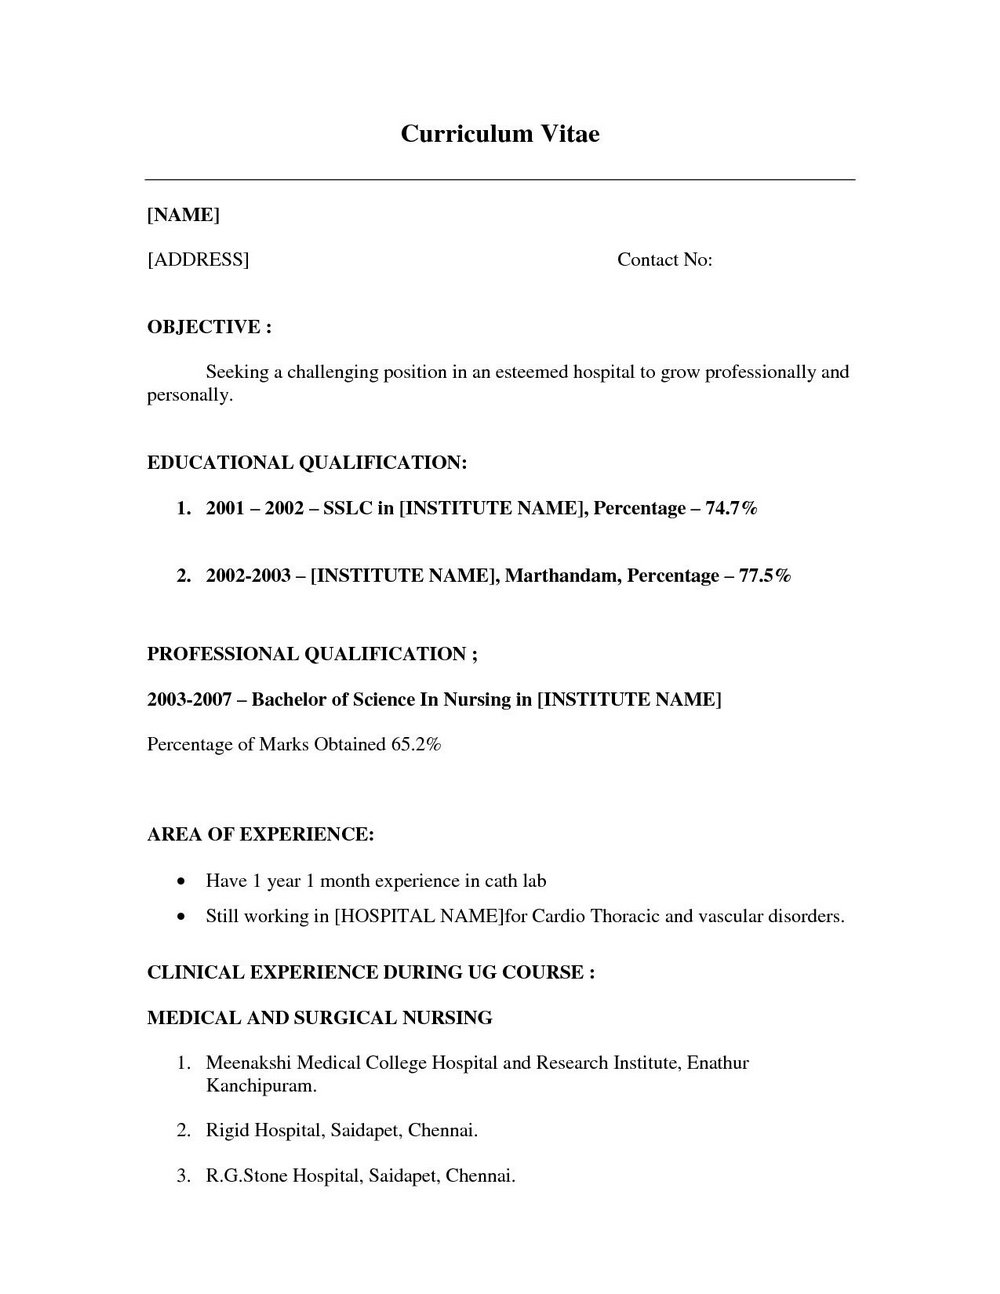 Sample Resume Format Download For Freshers